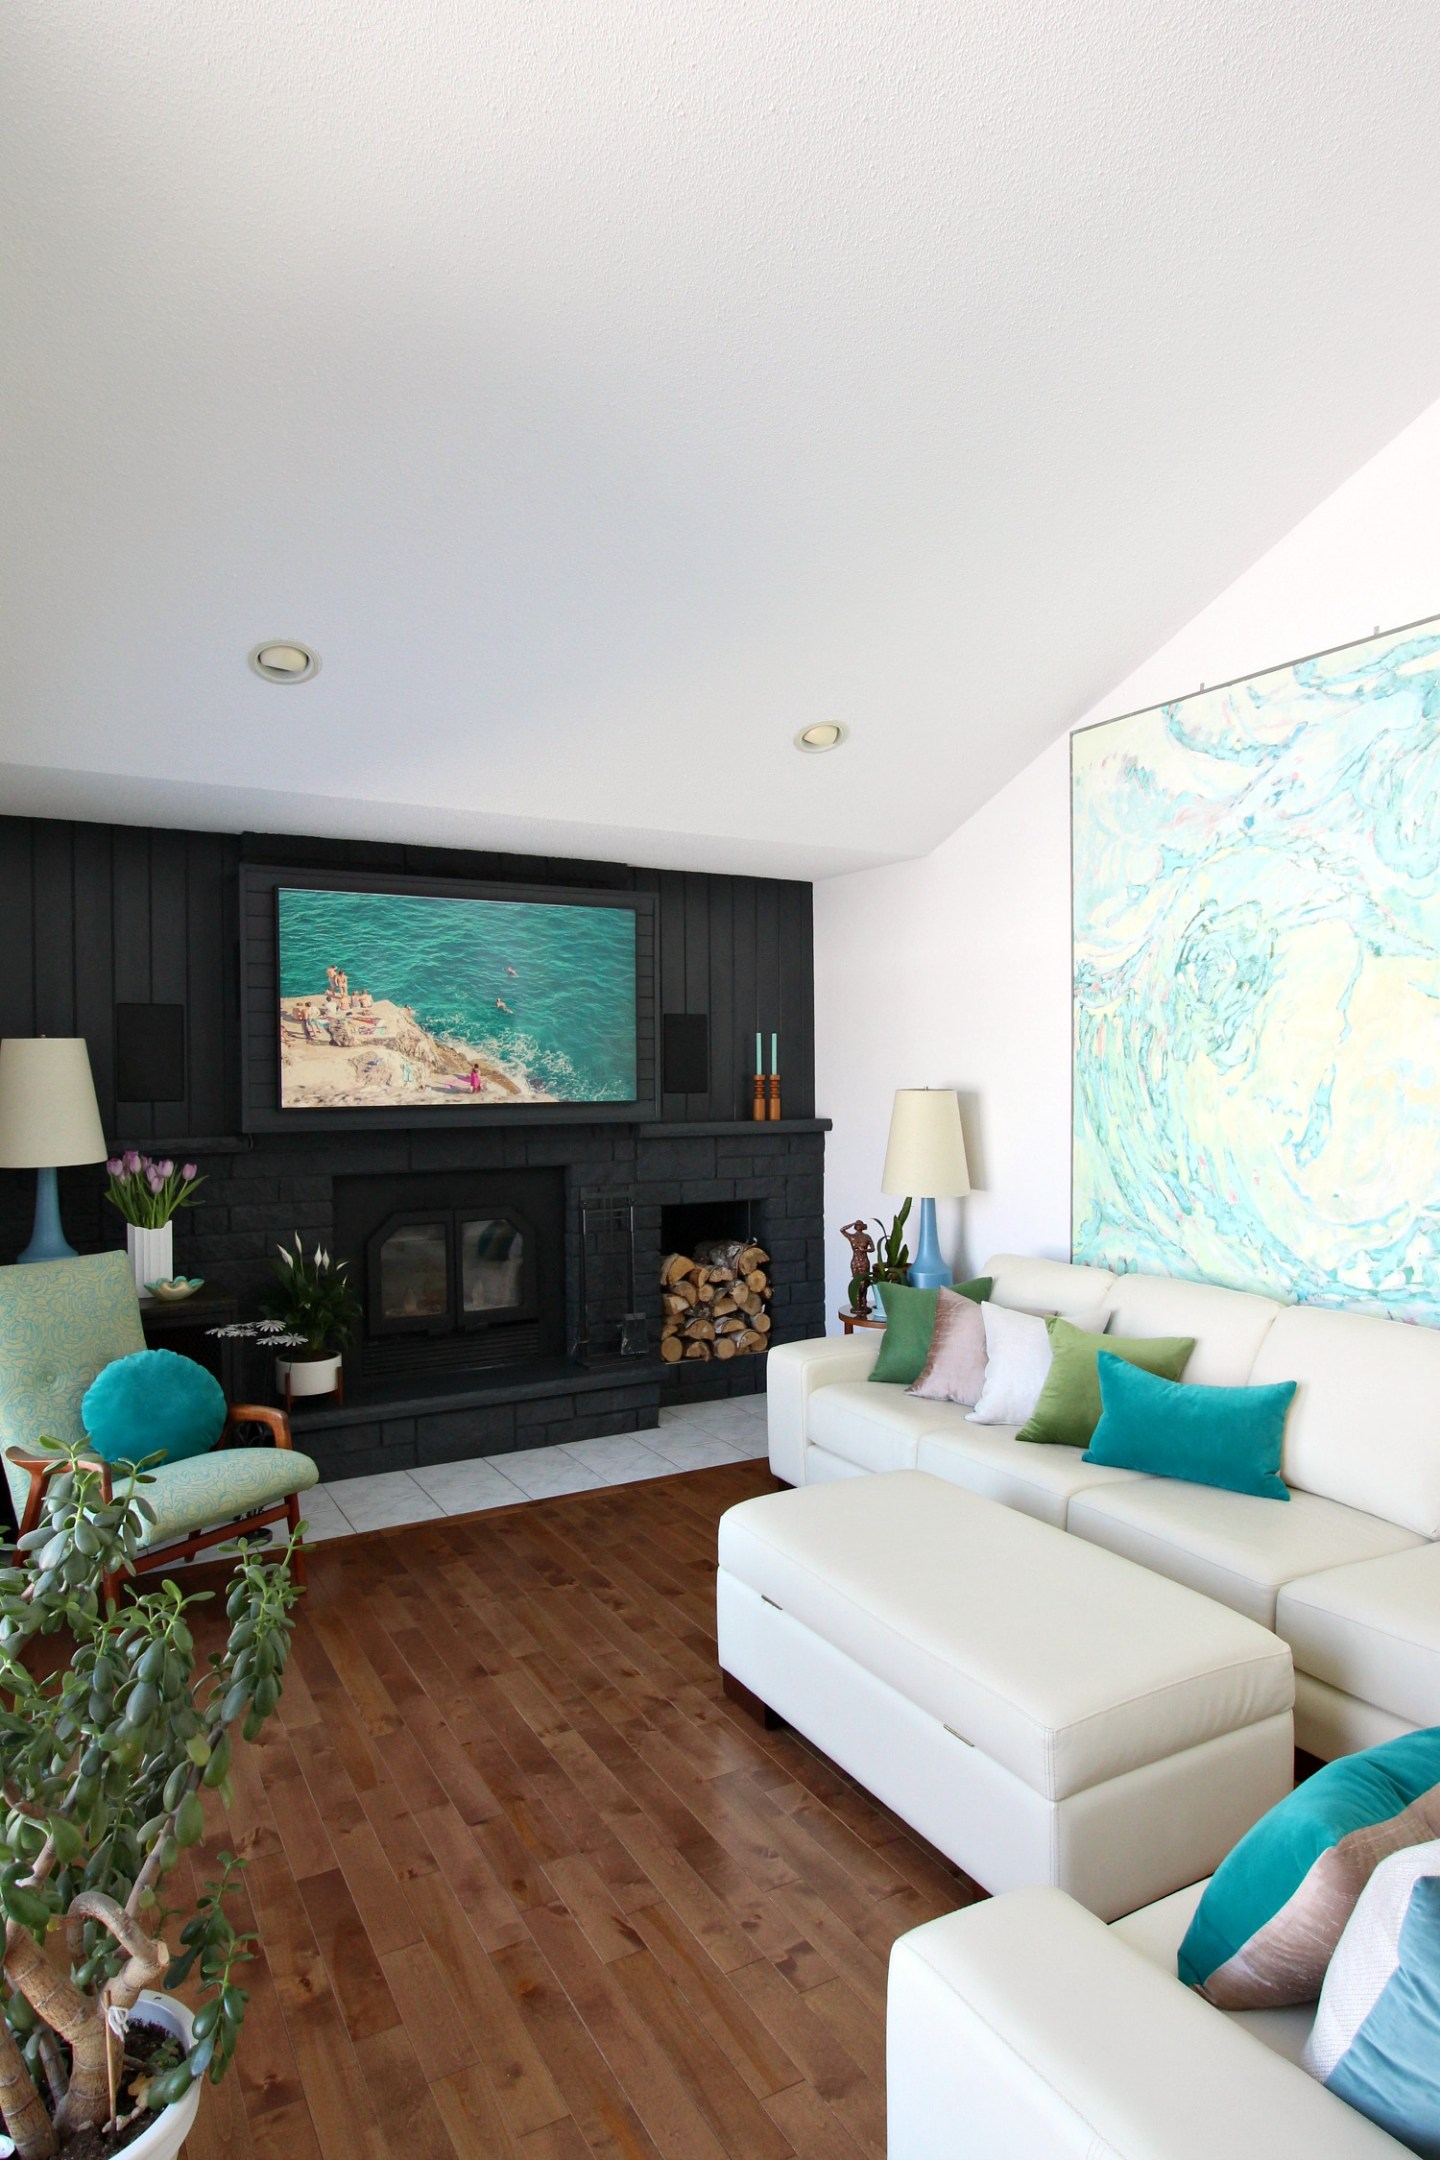 Fireplace Hack to Hang TV Above Fireplace with Speakers on Either Side